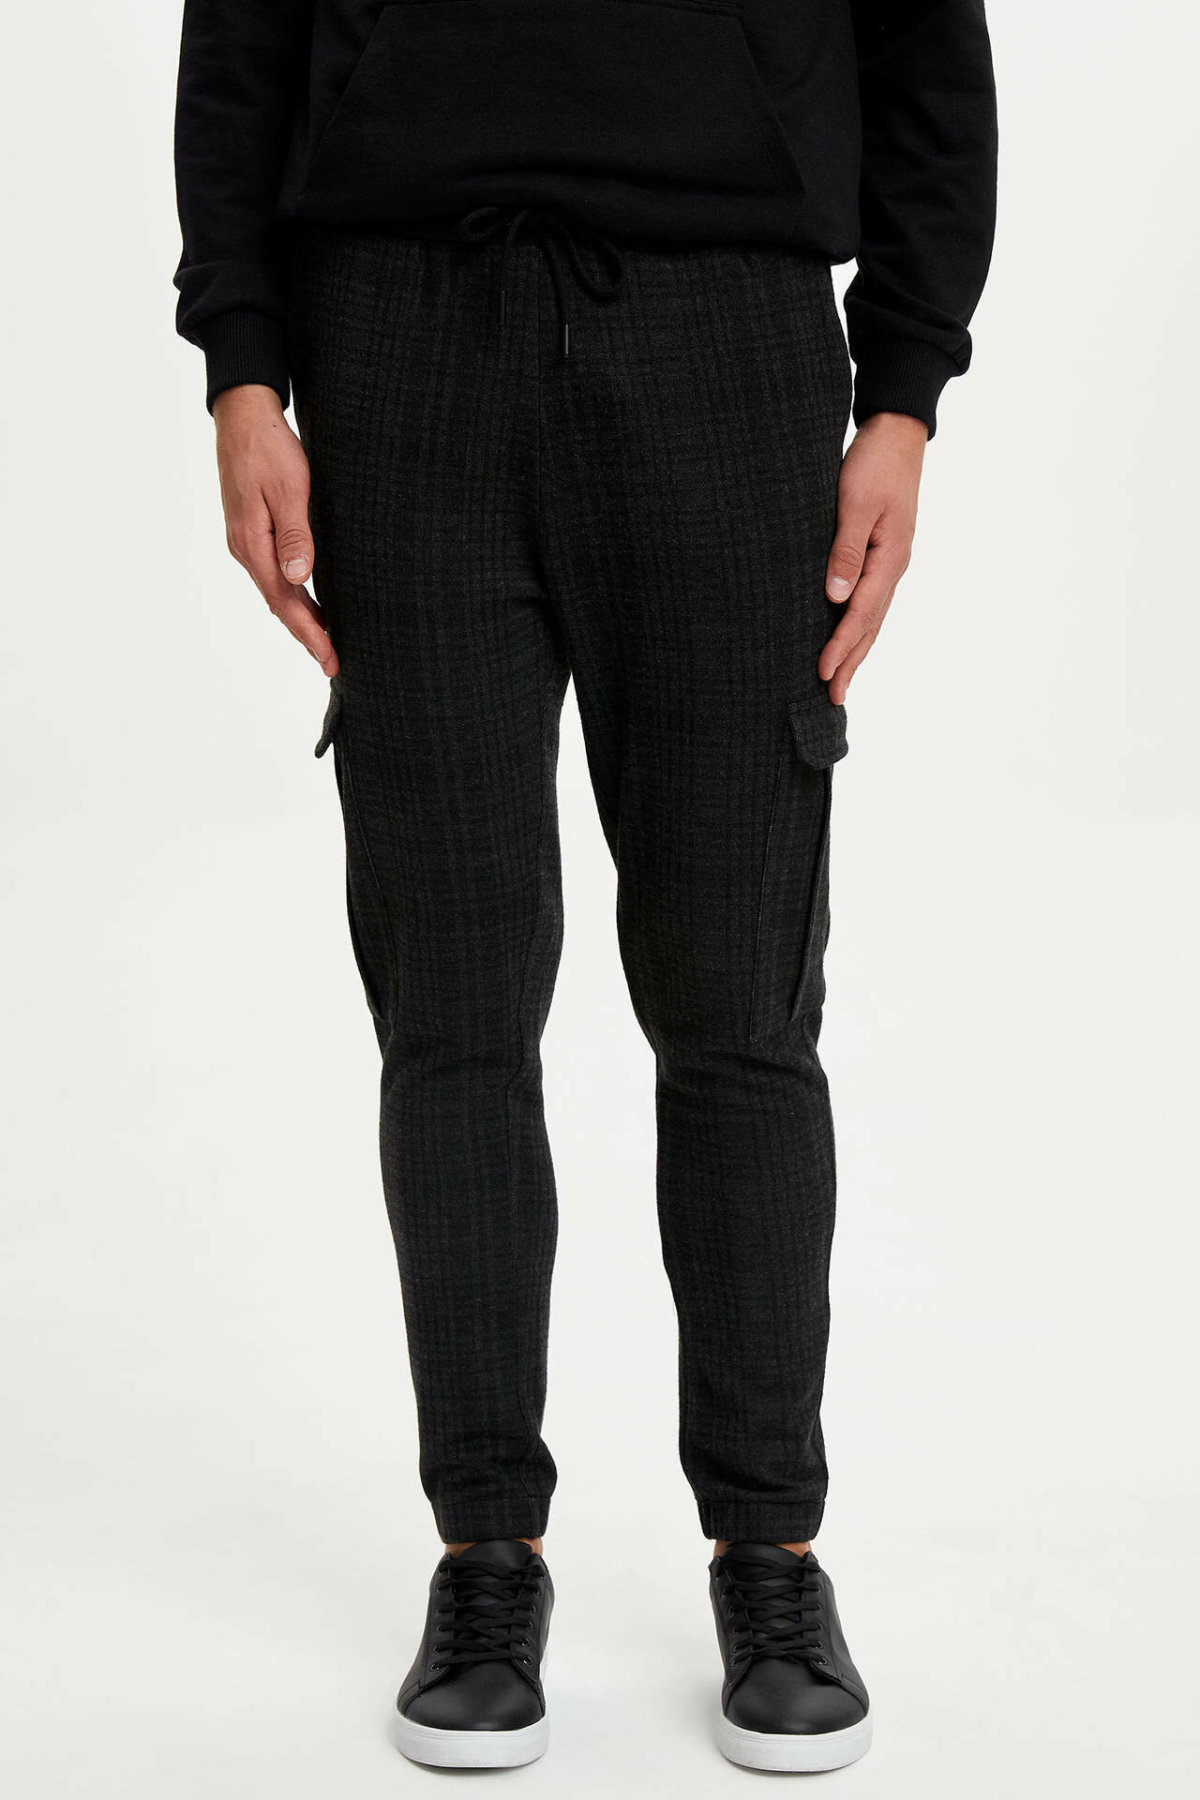 DeFacto Man Winter Black Cargo Pants Men Casual Lace-up Bottoms Male Knitted Bottoms Trousers-L6397AZ19WN